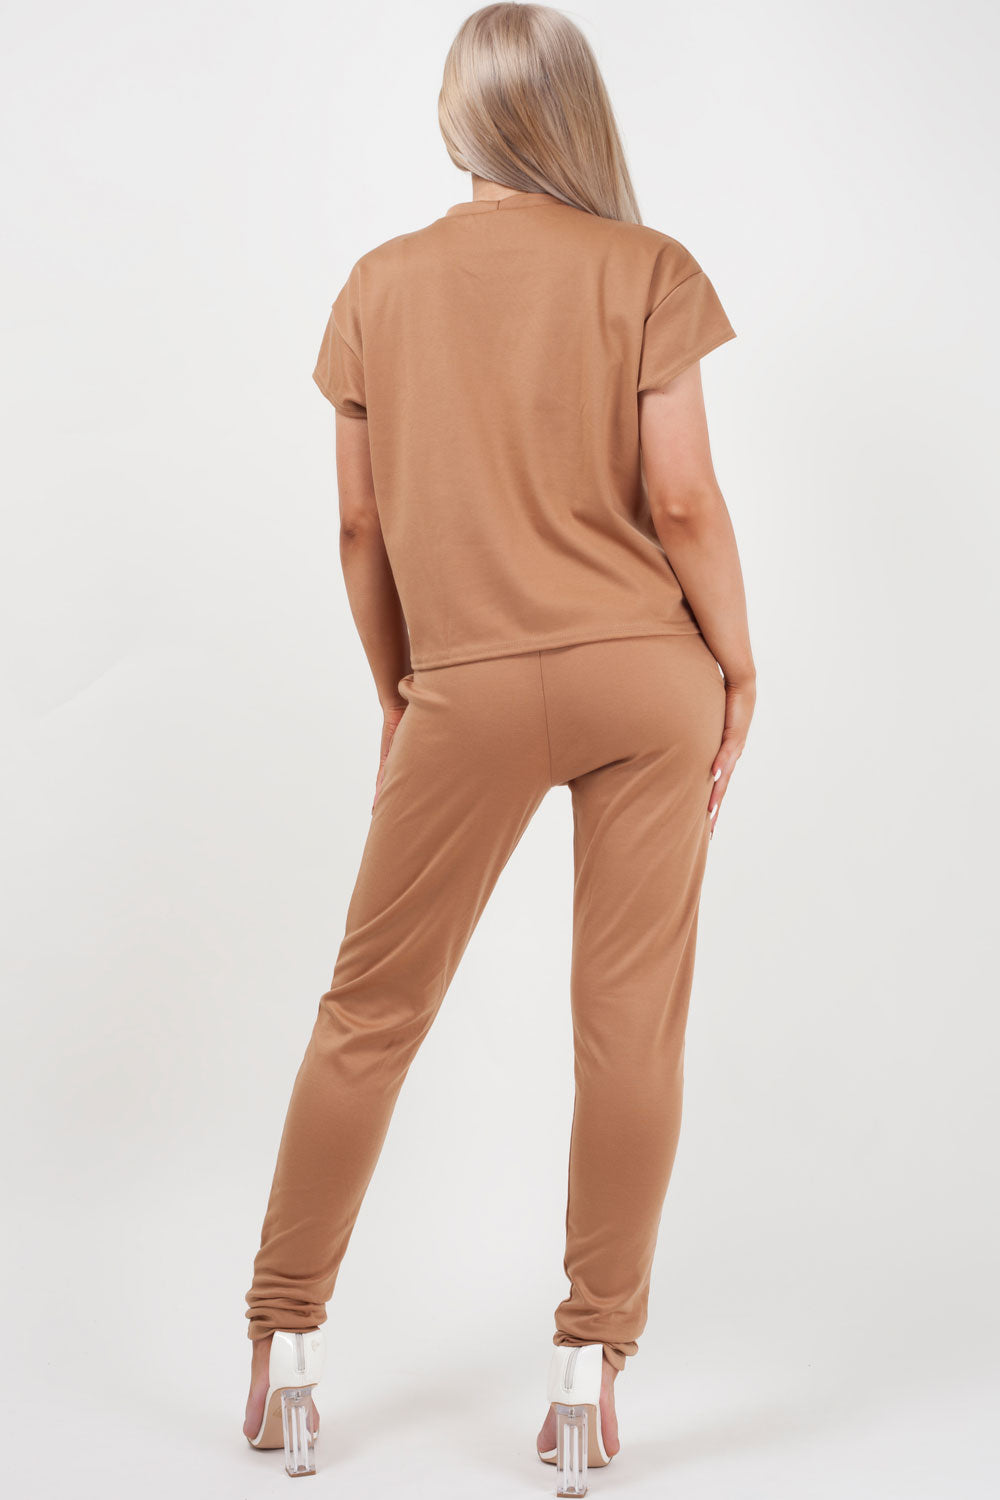 camel loungewear set